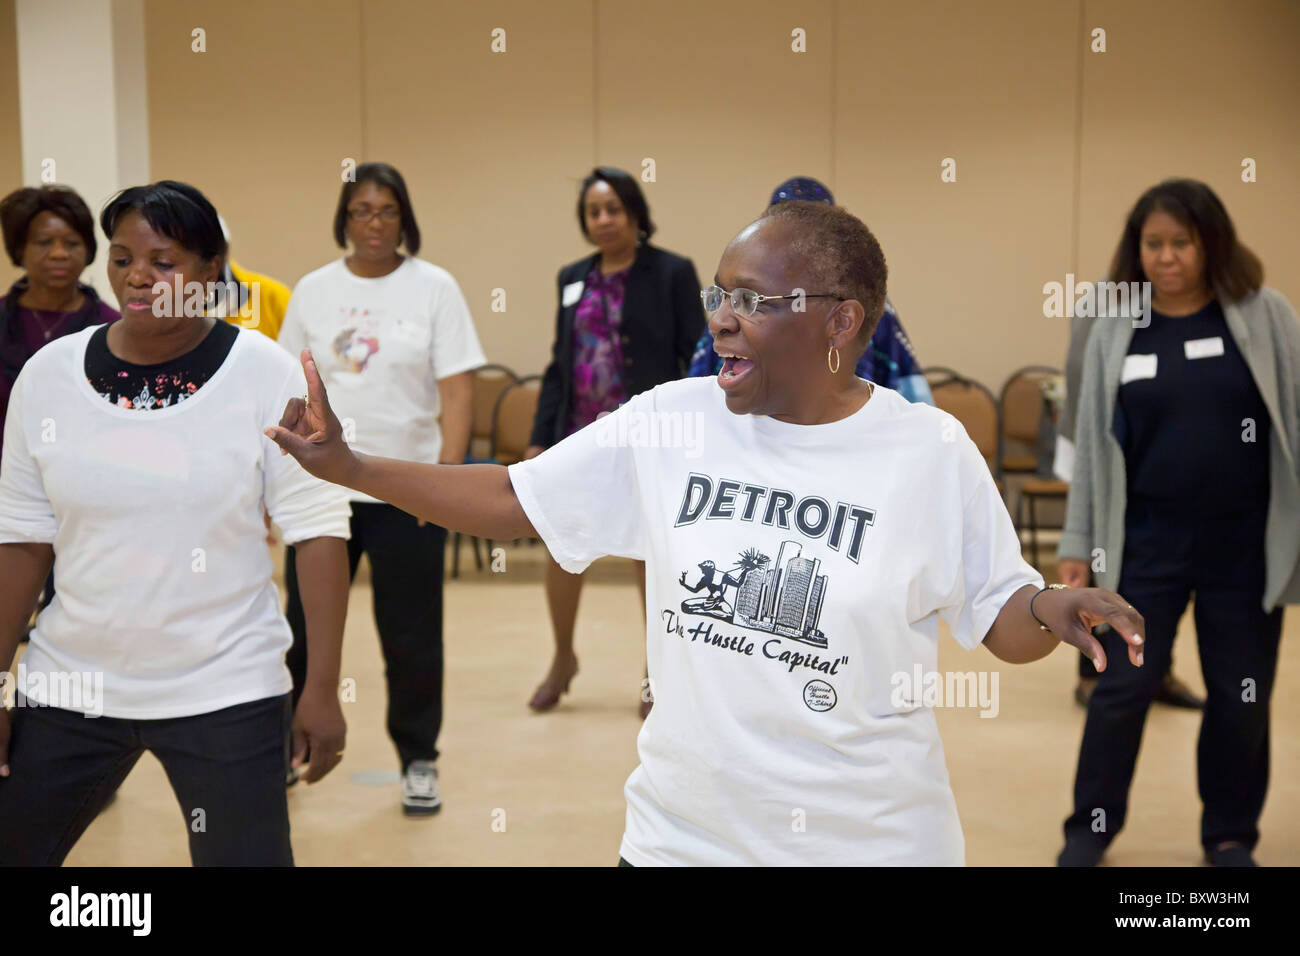 Women Exercise at Workshop on Healthy Living - Stock Image